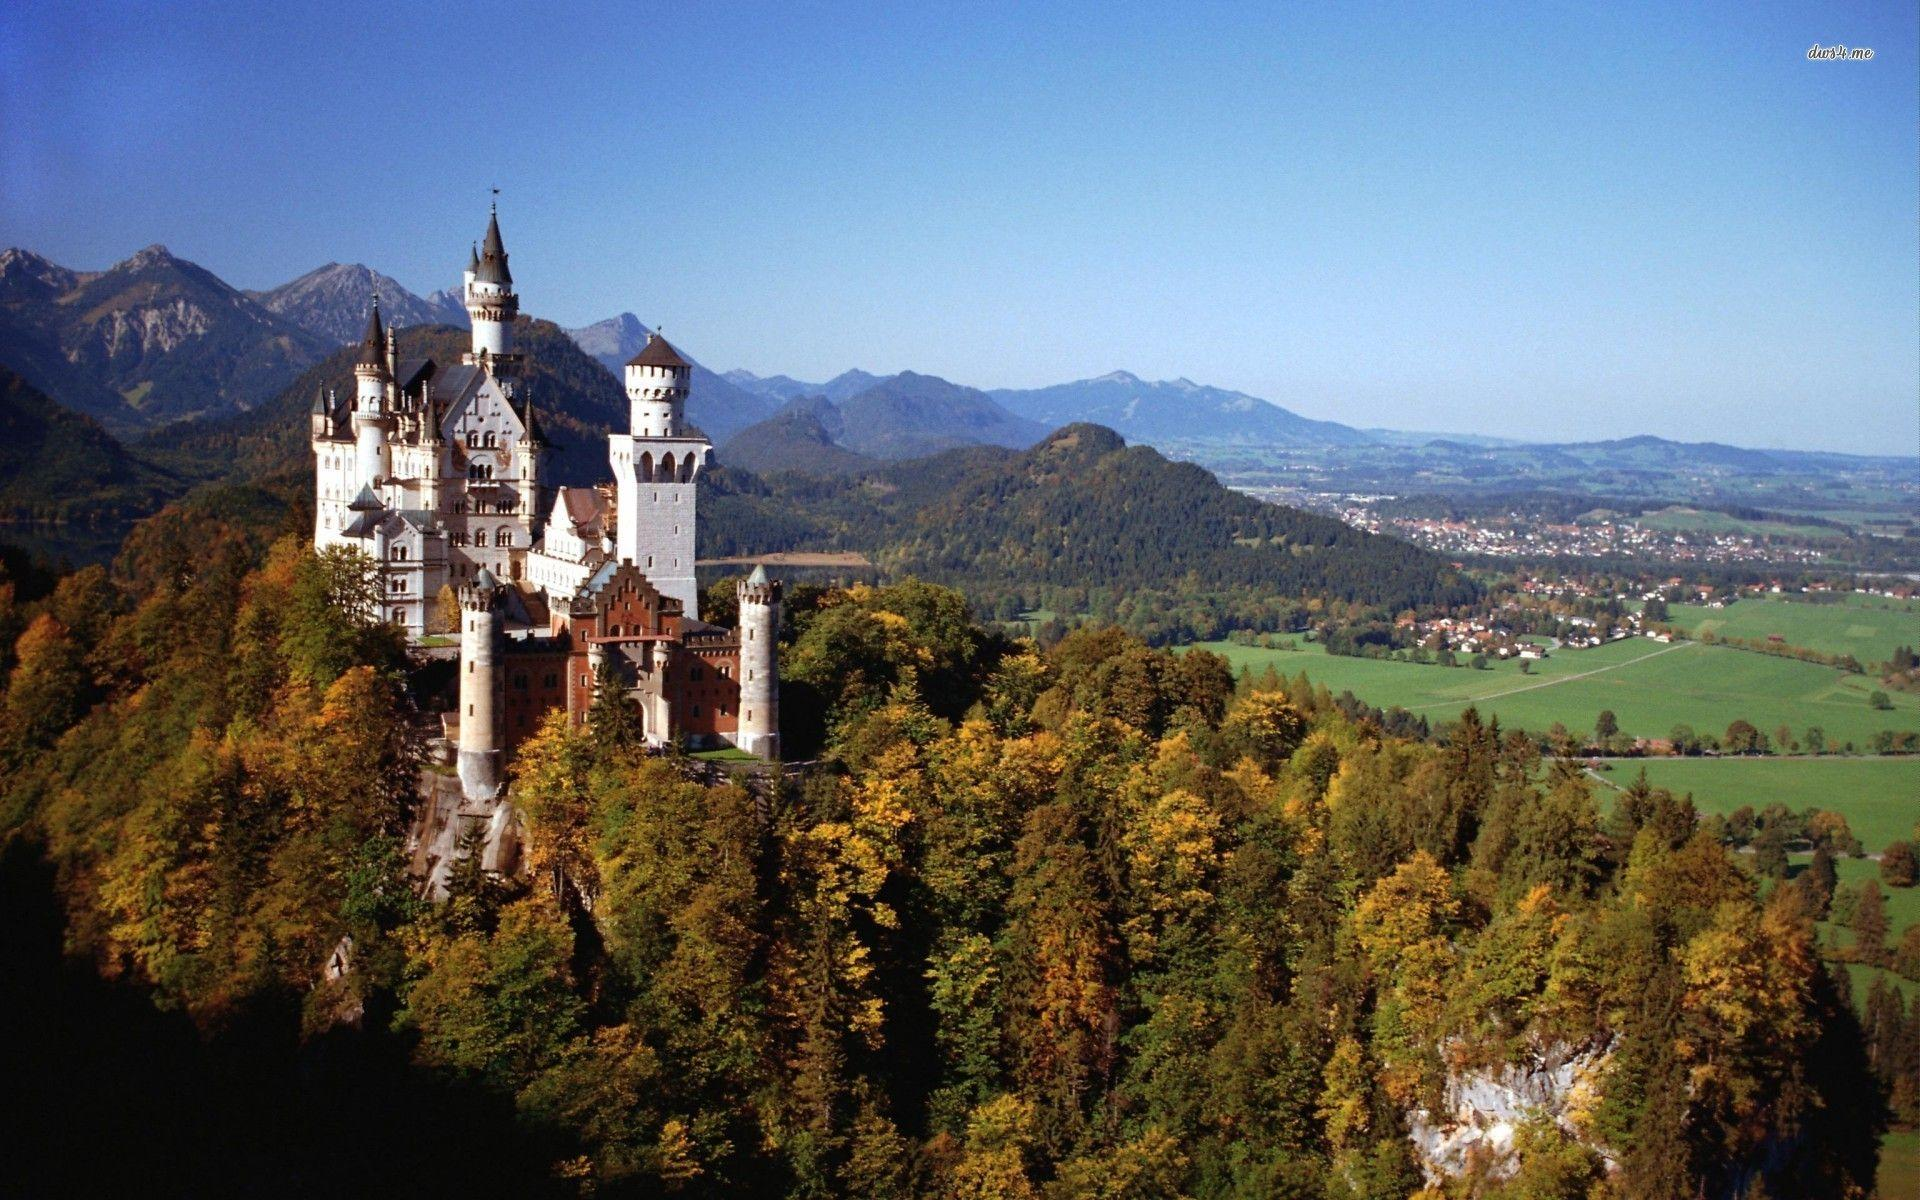 Neuschwanstein Castle Germany | wallpapersct.